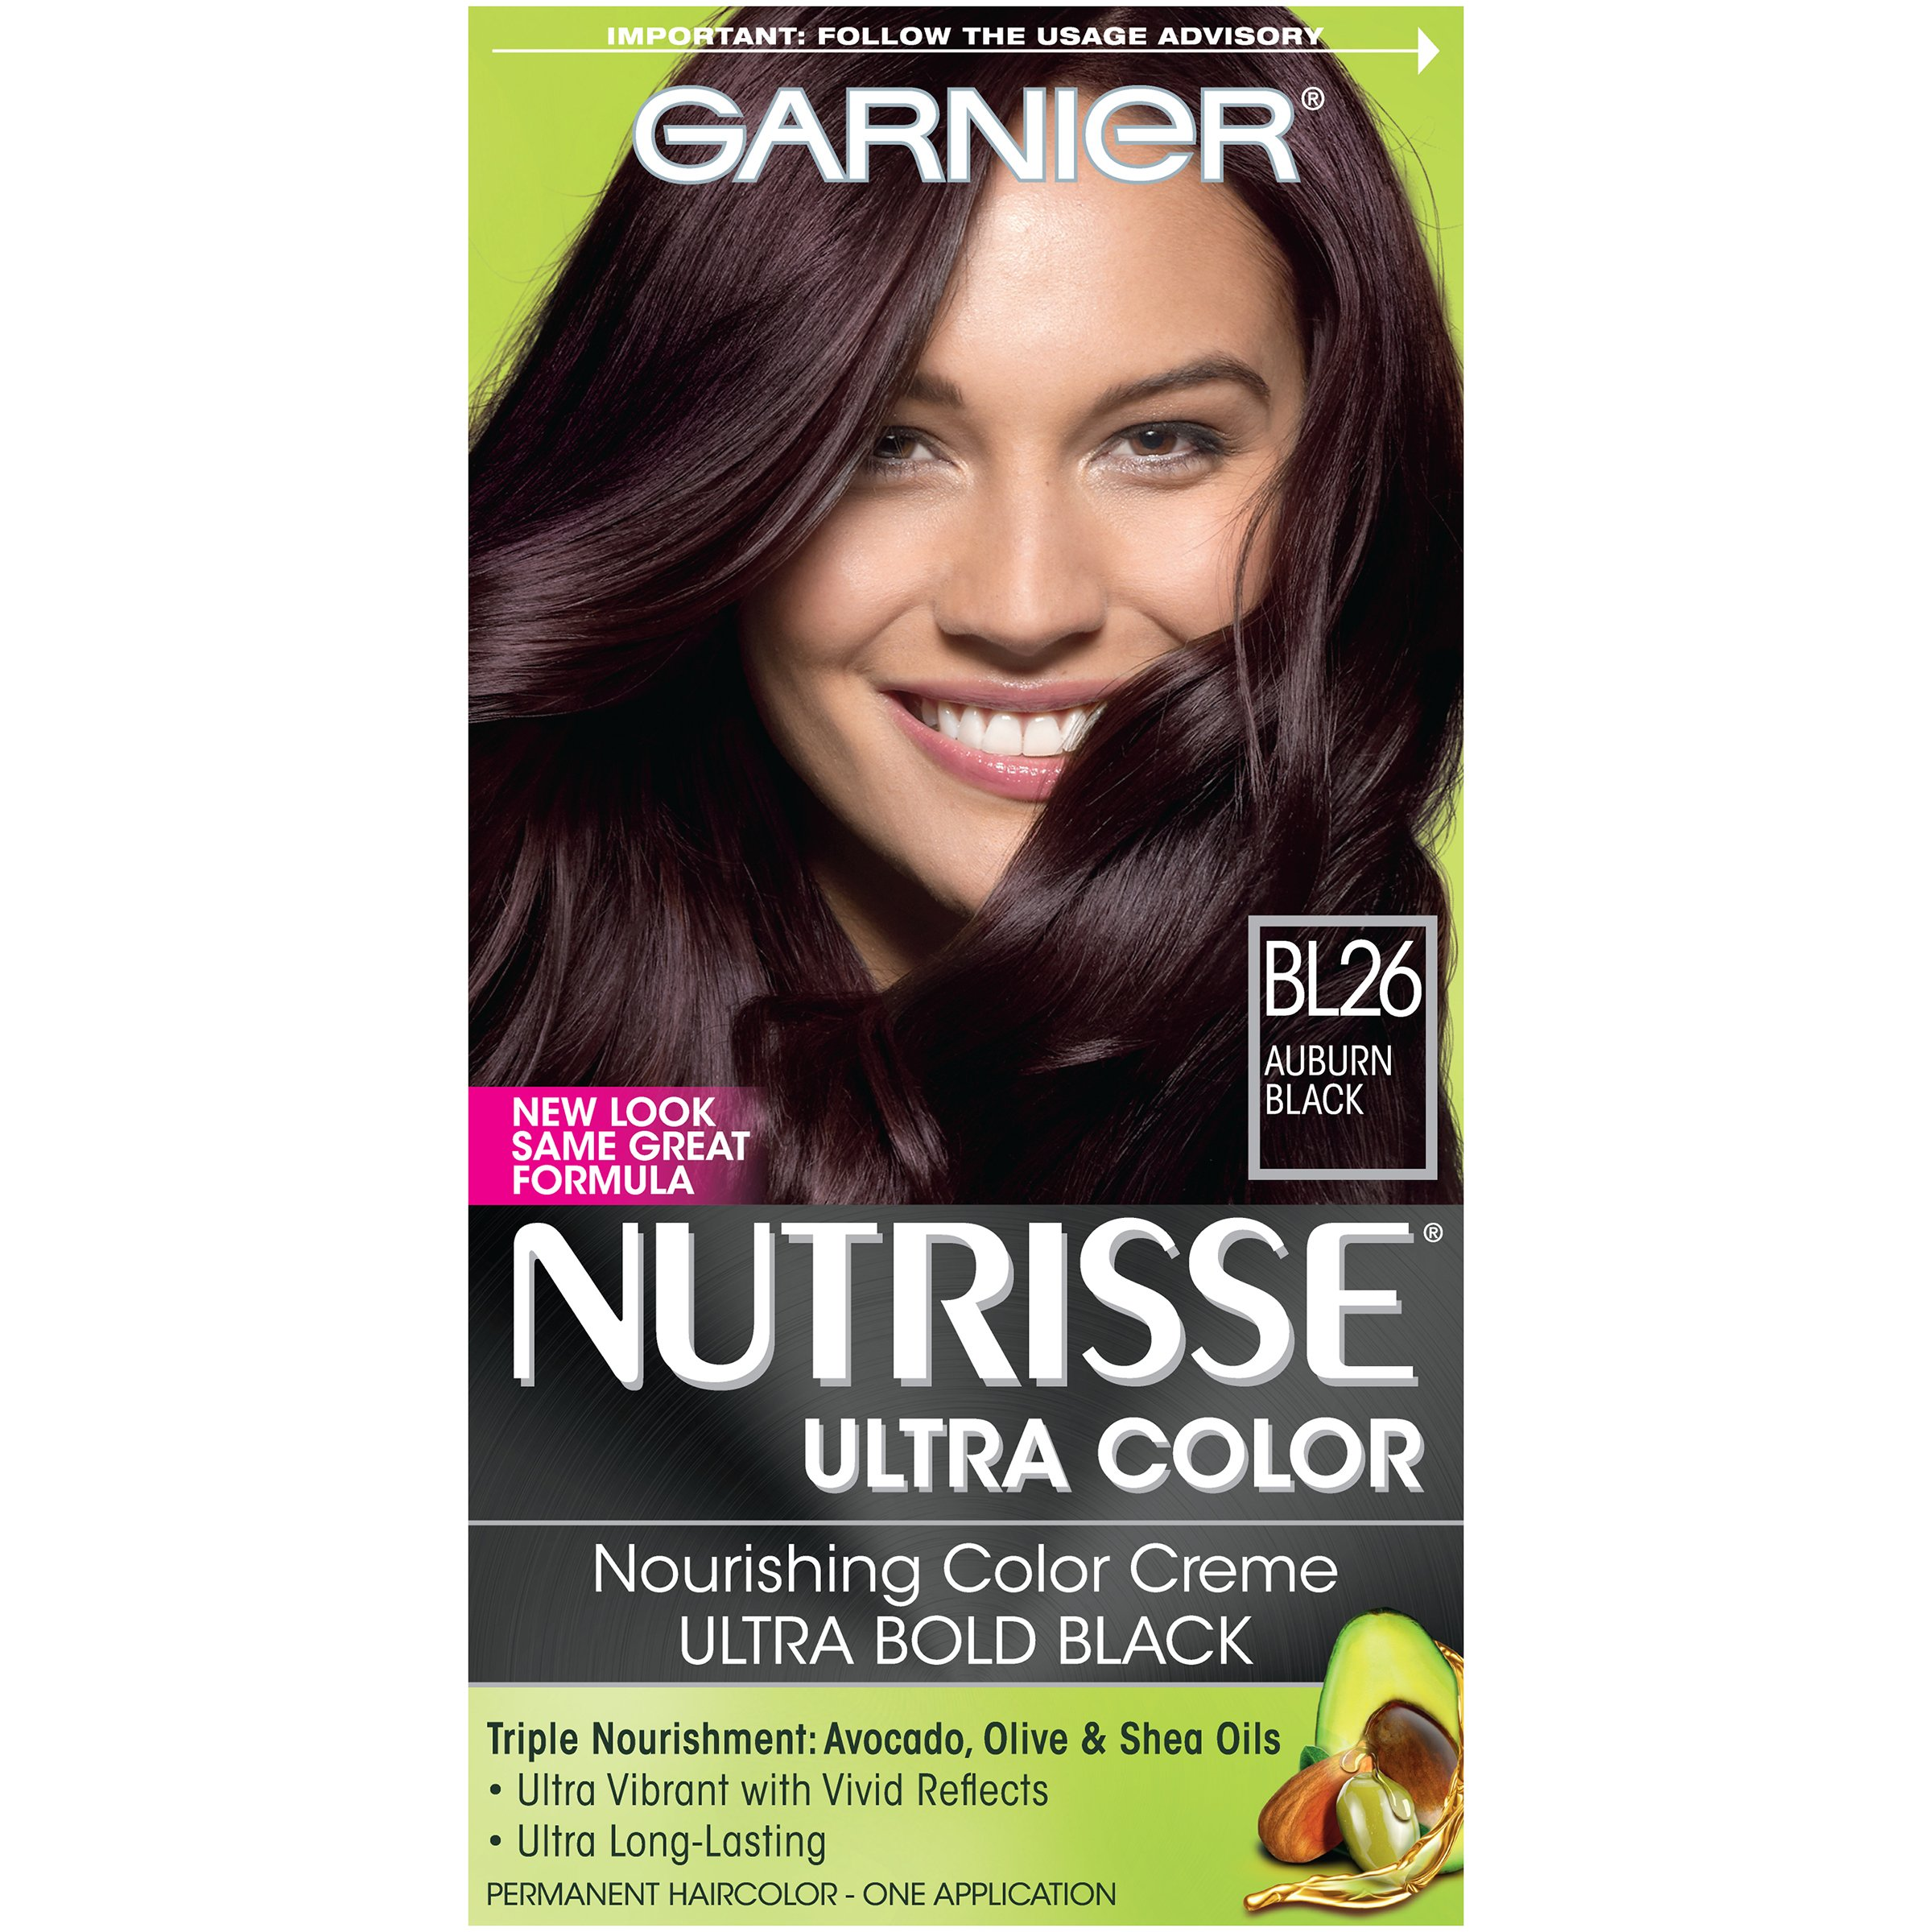 Amazon.com : Garnier Nutrisse Haircolor, R1 Dark Intense ...